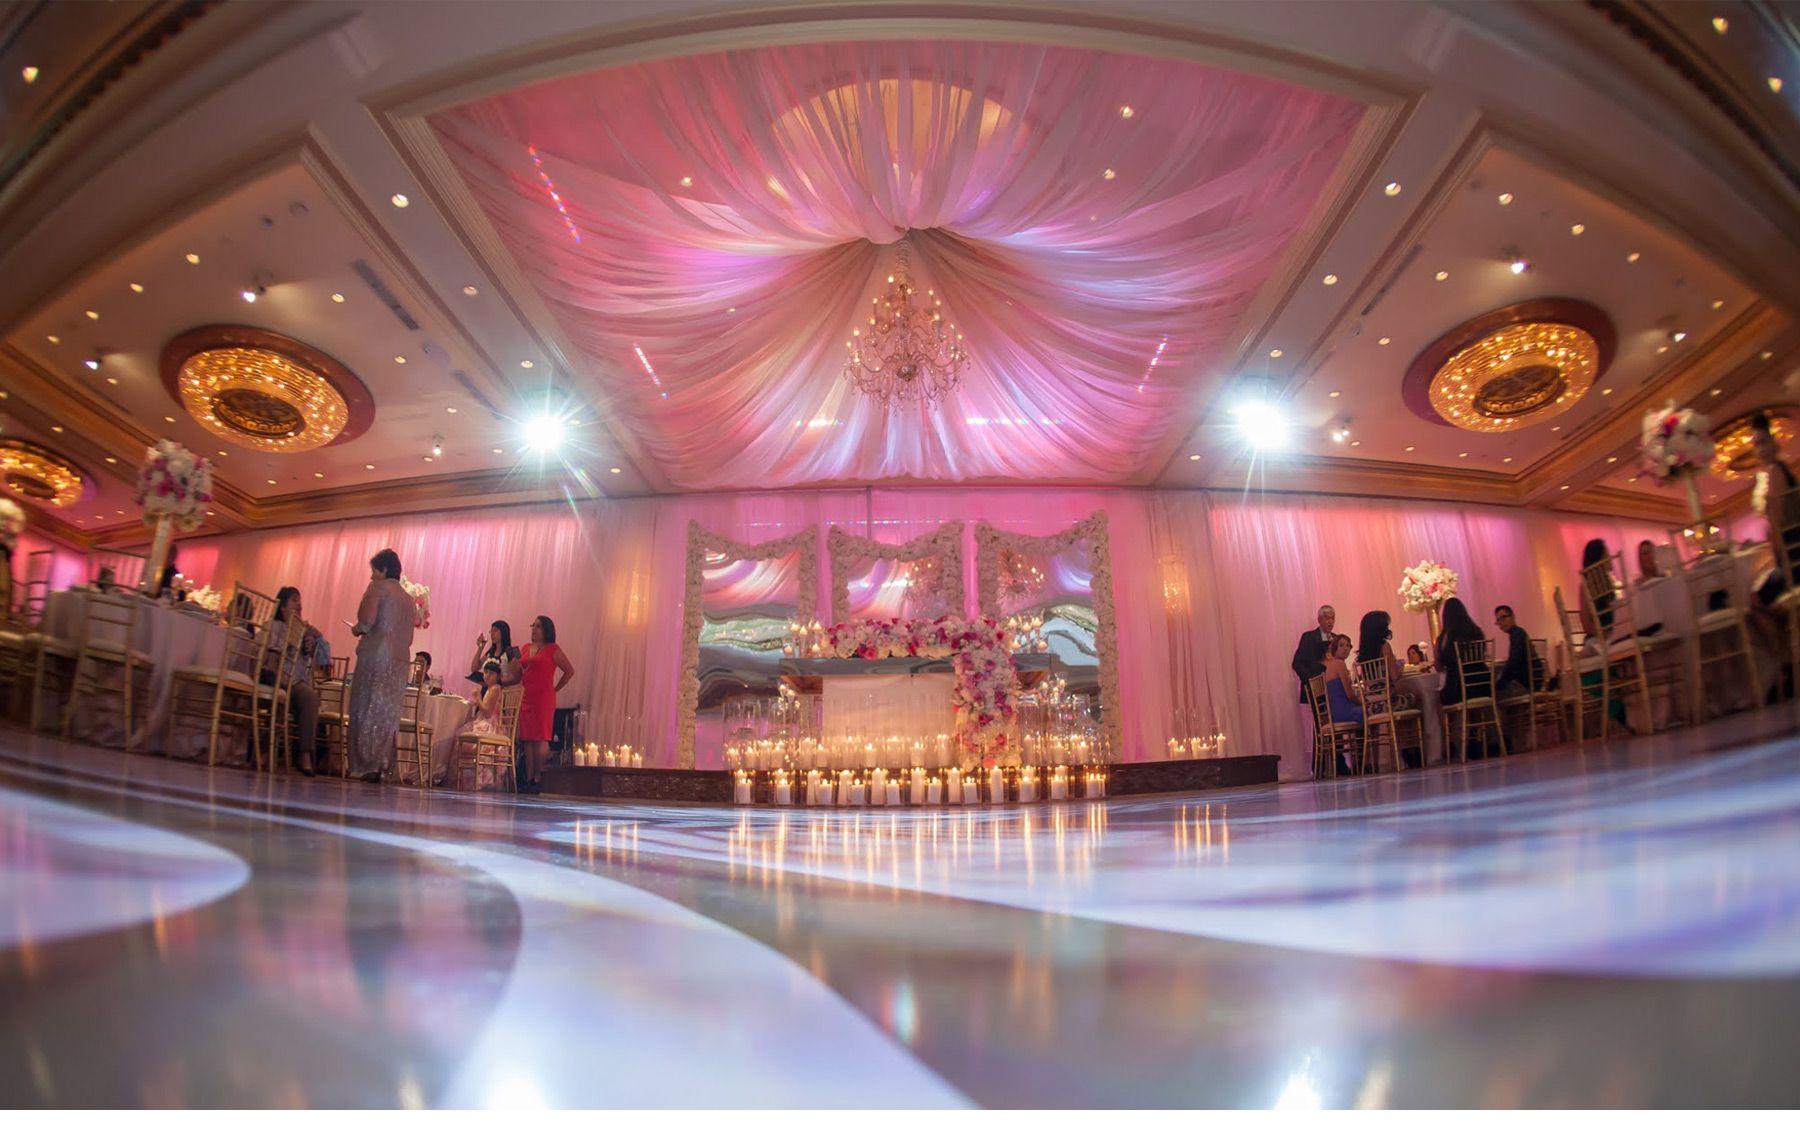 wedding reception venues cost%0A Glenoaks Ballroom by LA Banquets Weddings  Price out and compare wedding  costs for wedding ceremony and reception venues in Glendale  CA